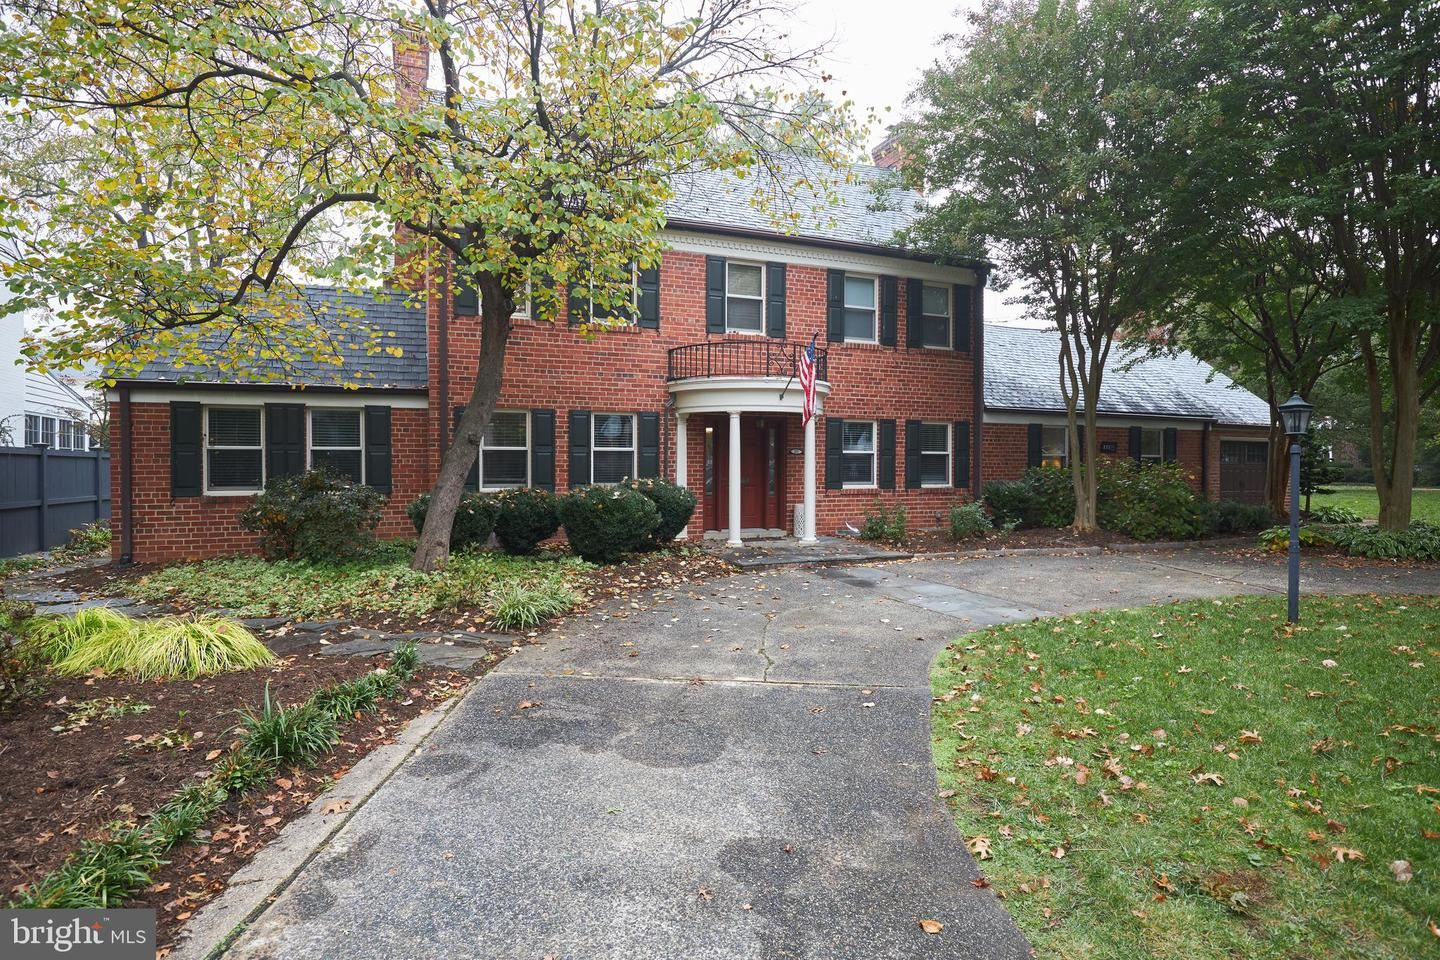 Photo of 111 NEWLANDS ST, CHEVY CHASE, MD 20815 (MLS # MDMC734260)